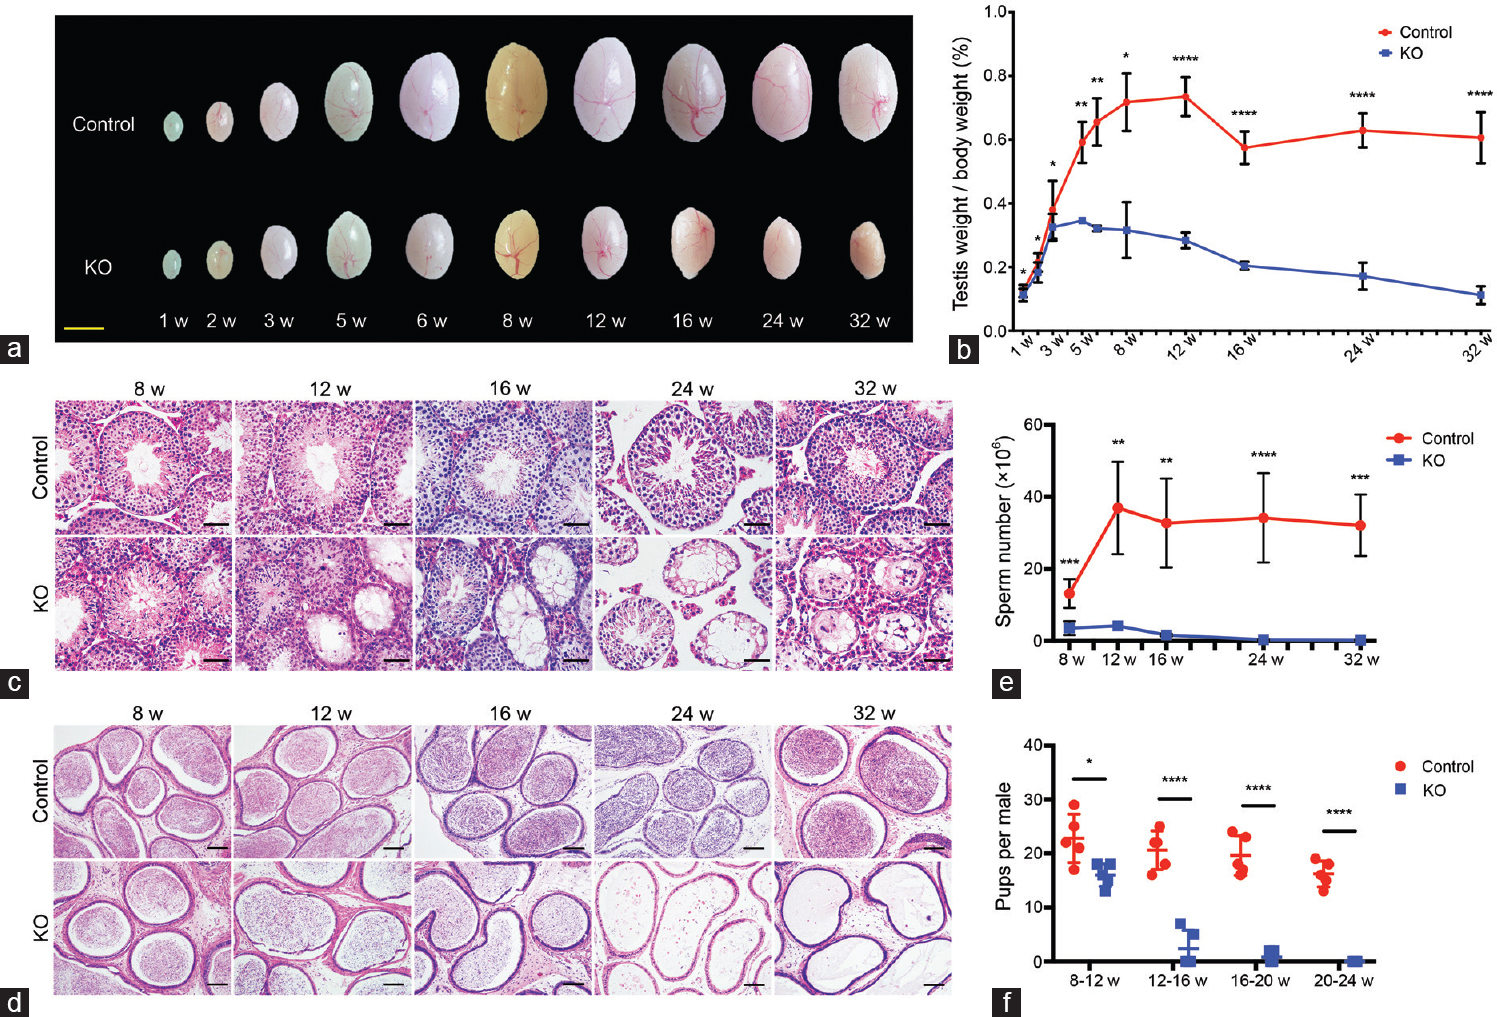 Figure 2: <i>Mtor</i> KO mice progressively lose their germ cells and fertility with age. (a) Representative images of testes from control and <i>Mtor</i> KO mice aged from 1 to 32 weeks old. Scale bar = 3mm. (b) Quantification of testis weight to body weight ratios of control and <i>Mtor</i> KO mice at different ages. (c) Representative images of H and E-stained testicular sections of control and <i>Mtor</i> KO mice aged from 8 weeks to 32 weeks old. Scale bars = 50 μm. (d) Representative images of H and E-stained cauda epididymal sections of control and <i>Mtor</i> KO mice at different ages. Scale bars = 100 μm. (e) Quantification of spermatozoa collected from the cauda epididymidis of control and <i>Mtor</i> KO mice at different ages. (f) Statistical analysis of the fertility of control and <i>Mtor</i> KO male mice at distinct age intervals. H and E: hematoxylin and eosin.<sup>*</sup><i>P</i> < 0.05;<sup>**</sup><i>P</i> < 0.01;<sup>***</sup><i>P</i> < 0.001;<sup>****</sup><i>P</i> < 0.0001.